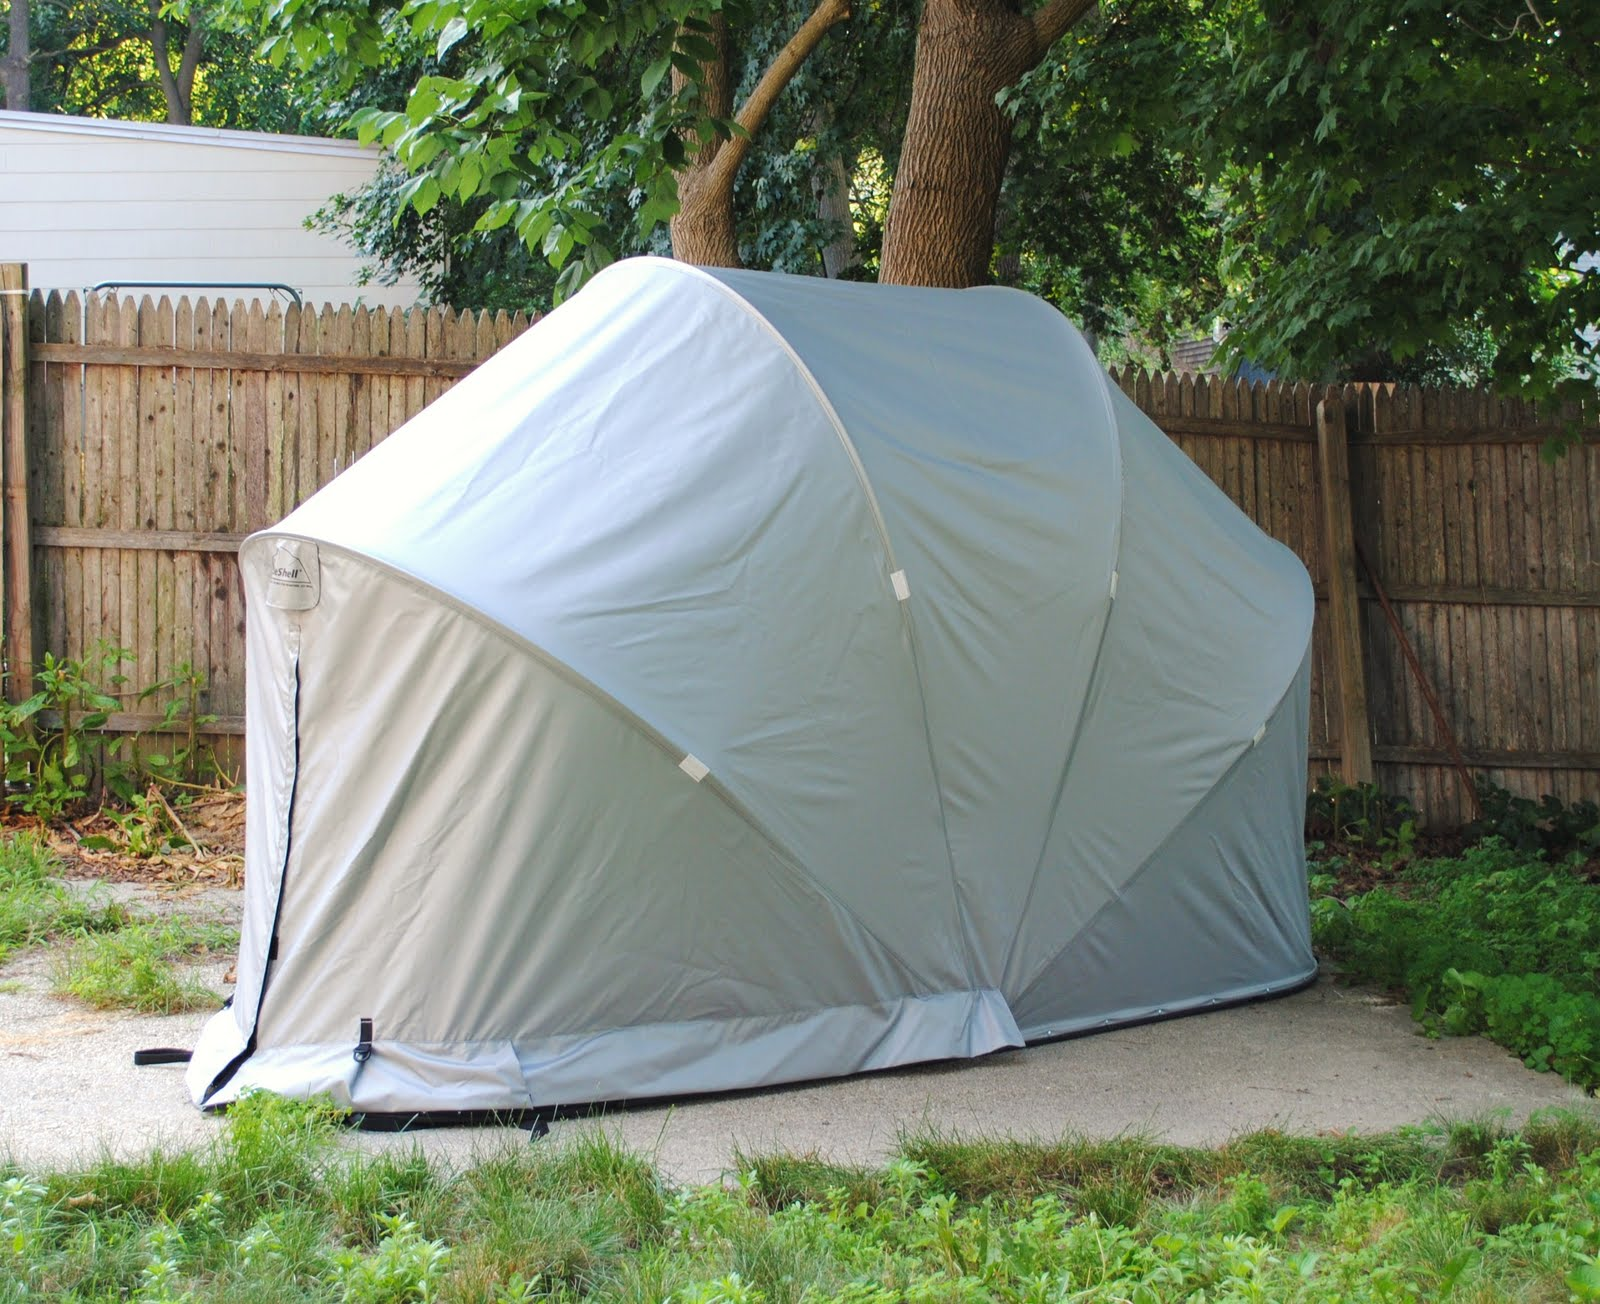 Motorcycle Portable Garages And Shelters : Shybiker everybody needs a home